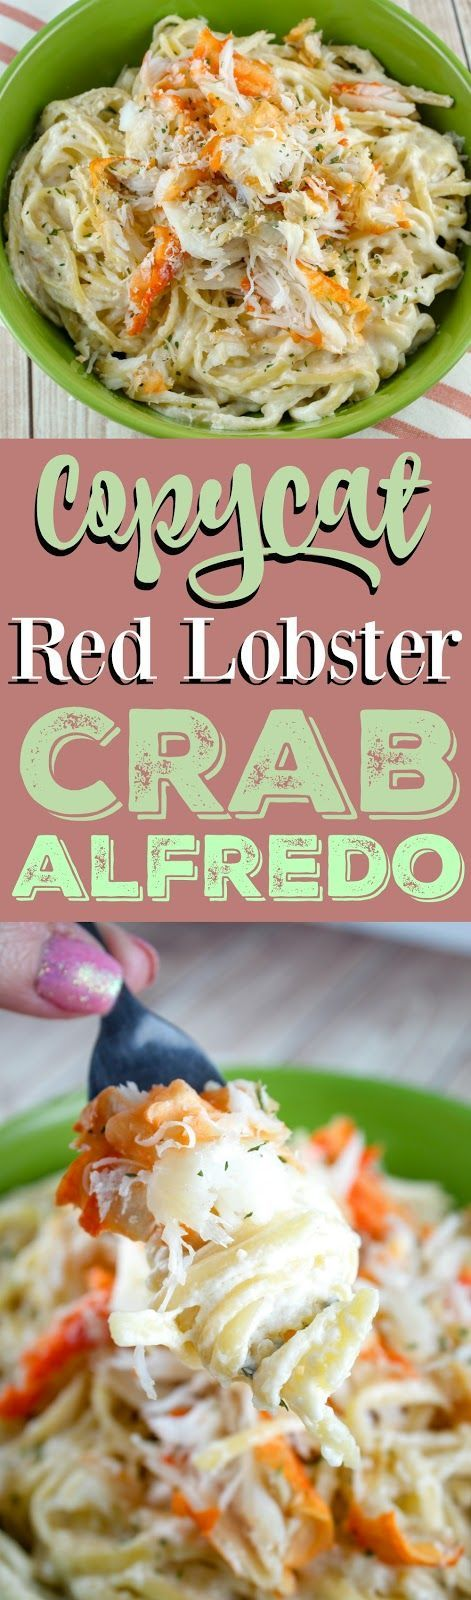 Recipe: Copycat Red Lobster Crab Alfredo, #Alfredo #Copycat #crab #fishmarket #imitationlobster #kingseafood #Lobster #lobsterrestaurant #obster #recipe #Red #scallops #seafood #seafoodmarketnearme #seafoodpot #seafoodwholesale